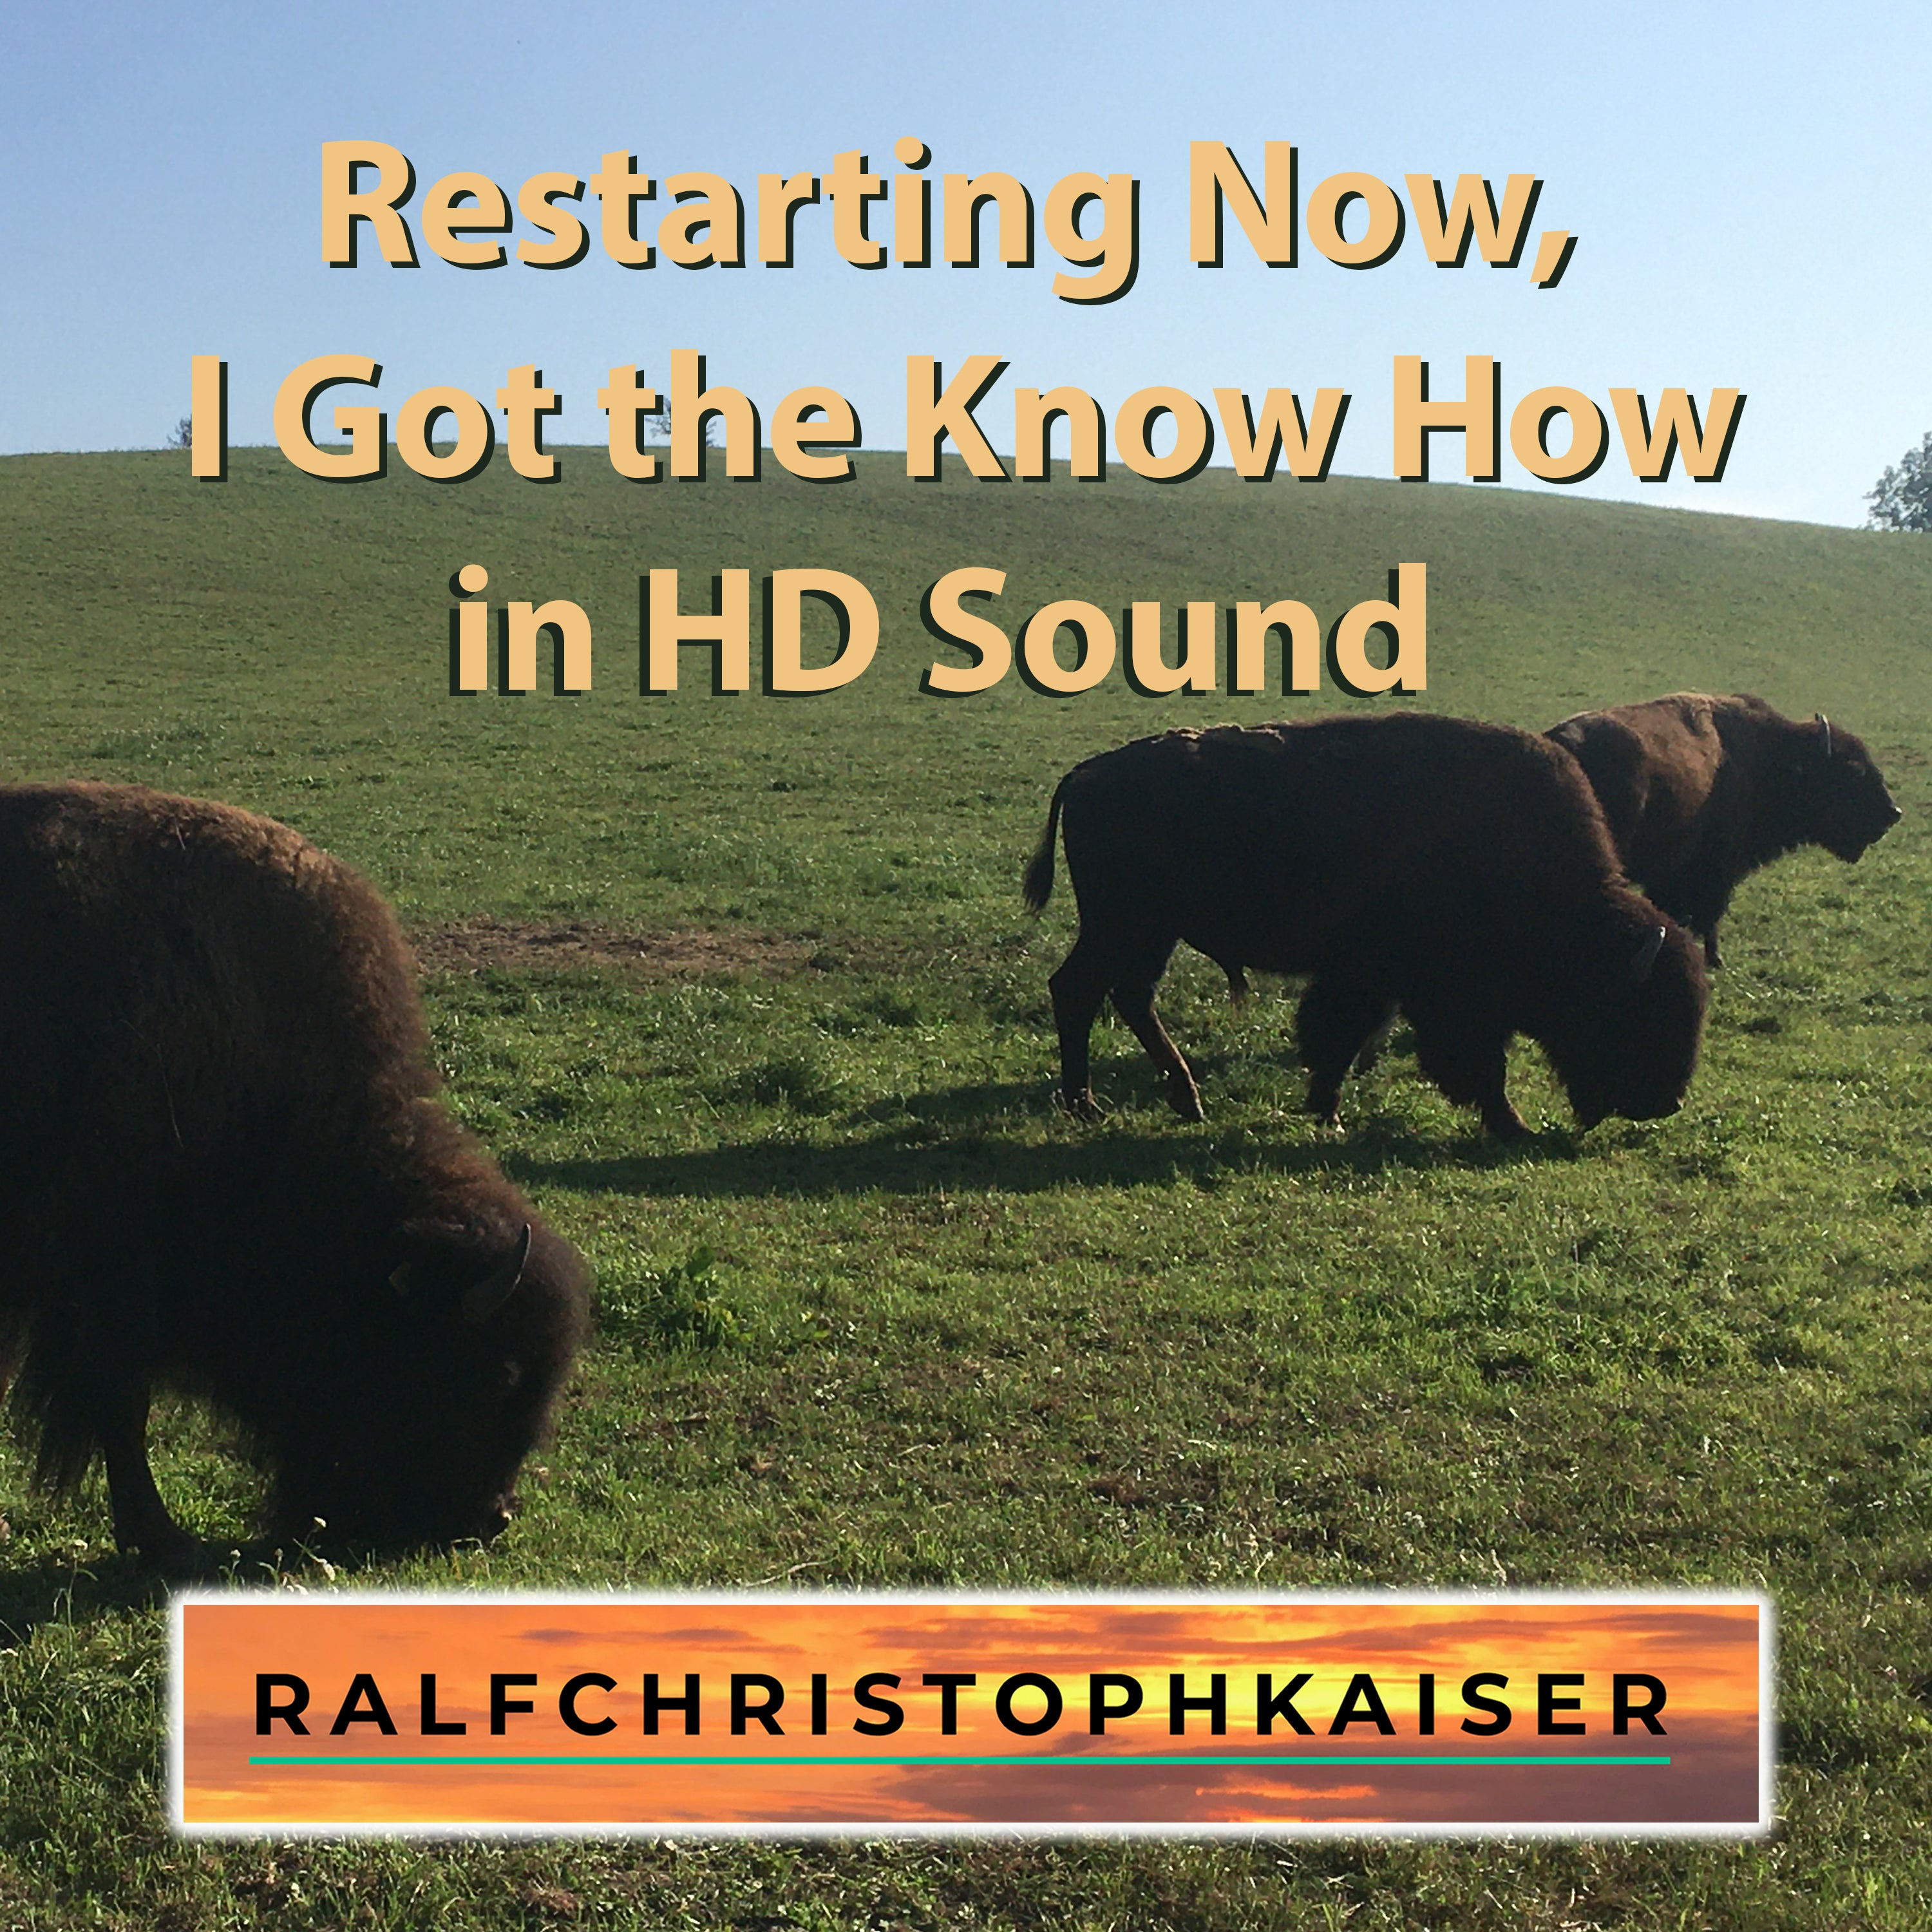 "The new alternative rock song by Ralf Christoph Kaiser and band:""restarting now, i got the know how""in HD sound power version without vocals"